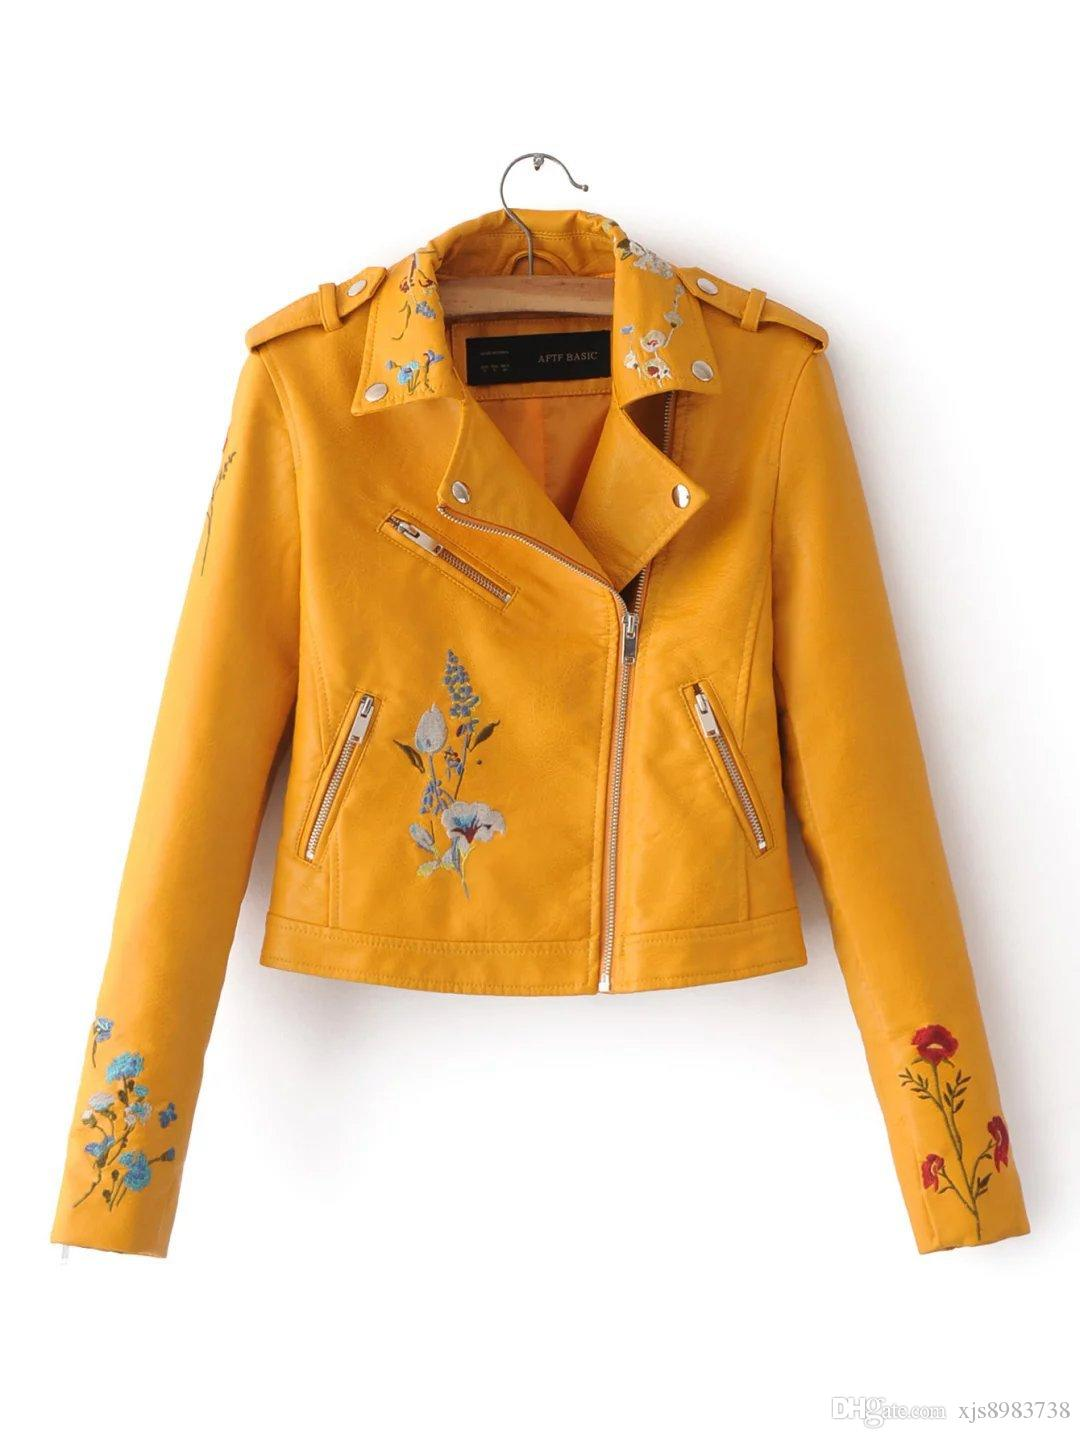 Spring Bomber Jacket Women 2017 New Floral Embroidered Pu Leather